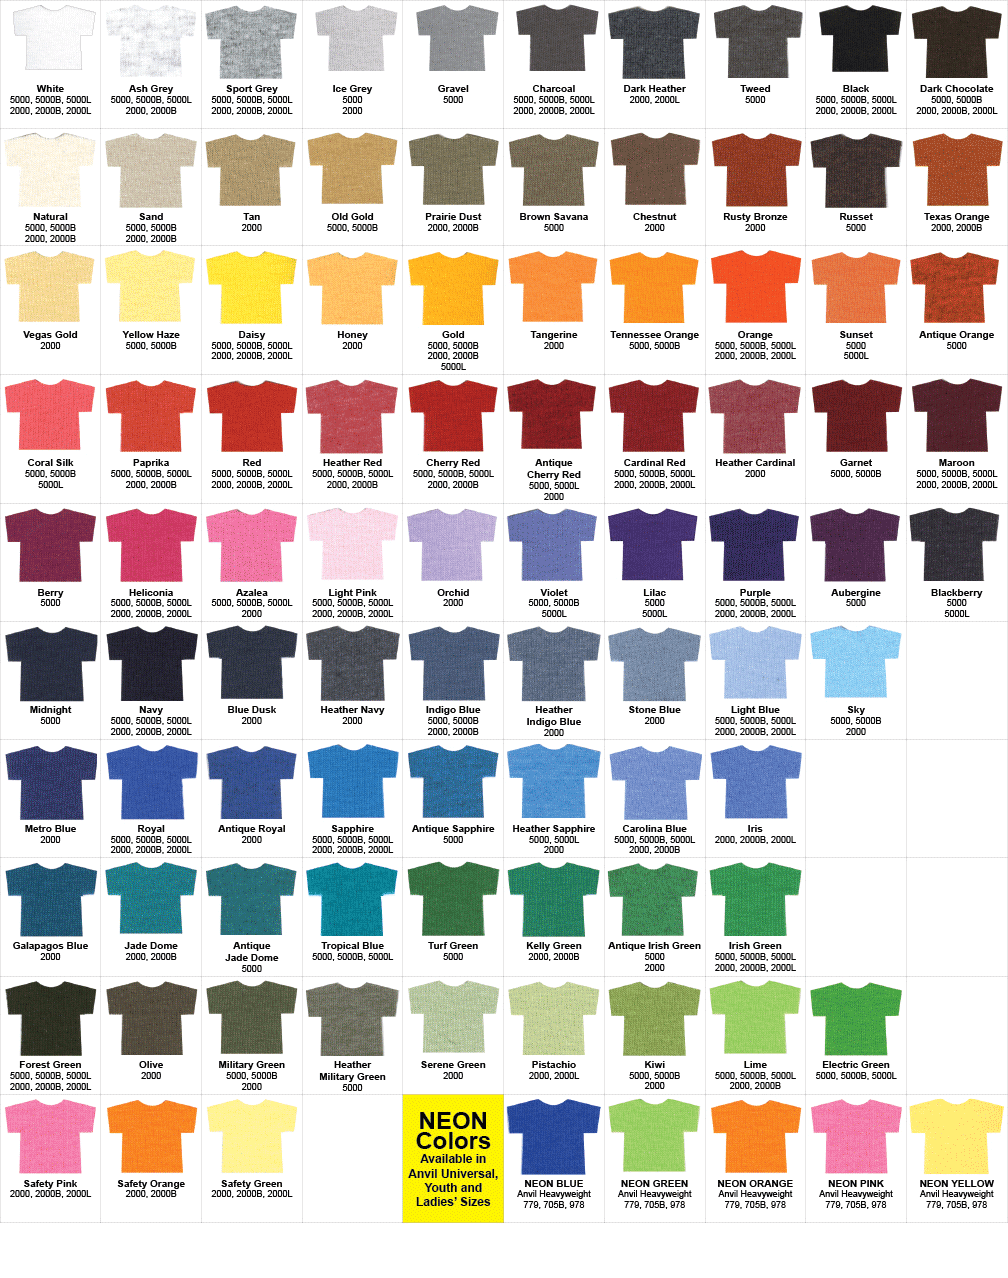 T shirt colors 2014 google search church wear pinterest t shirt details color chart glow in the dark t shirts by imagintee nvjuhfo Images